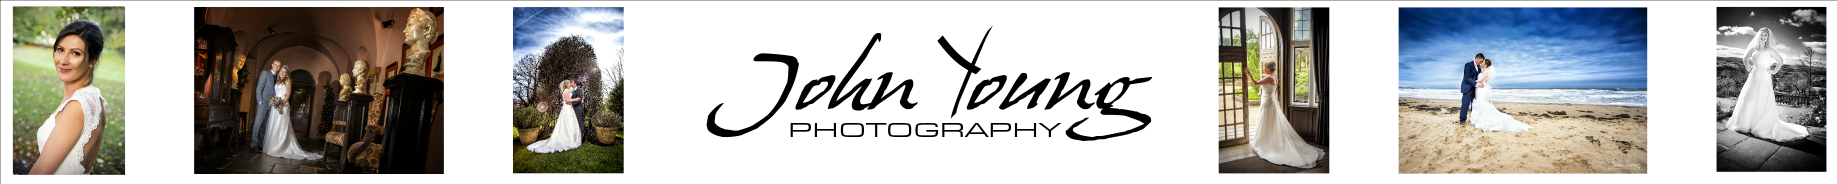 John Young Photography Blog